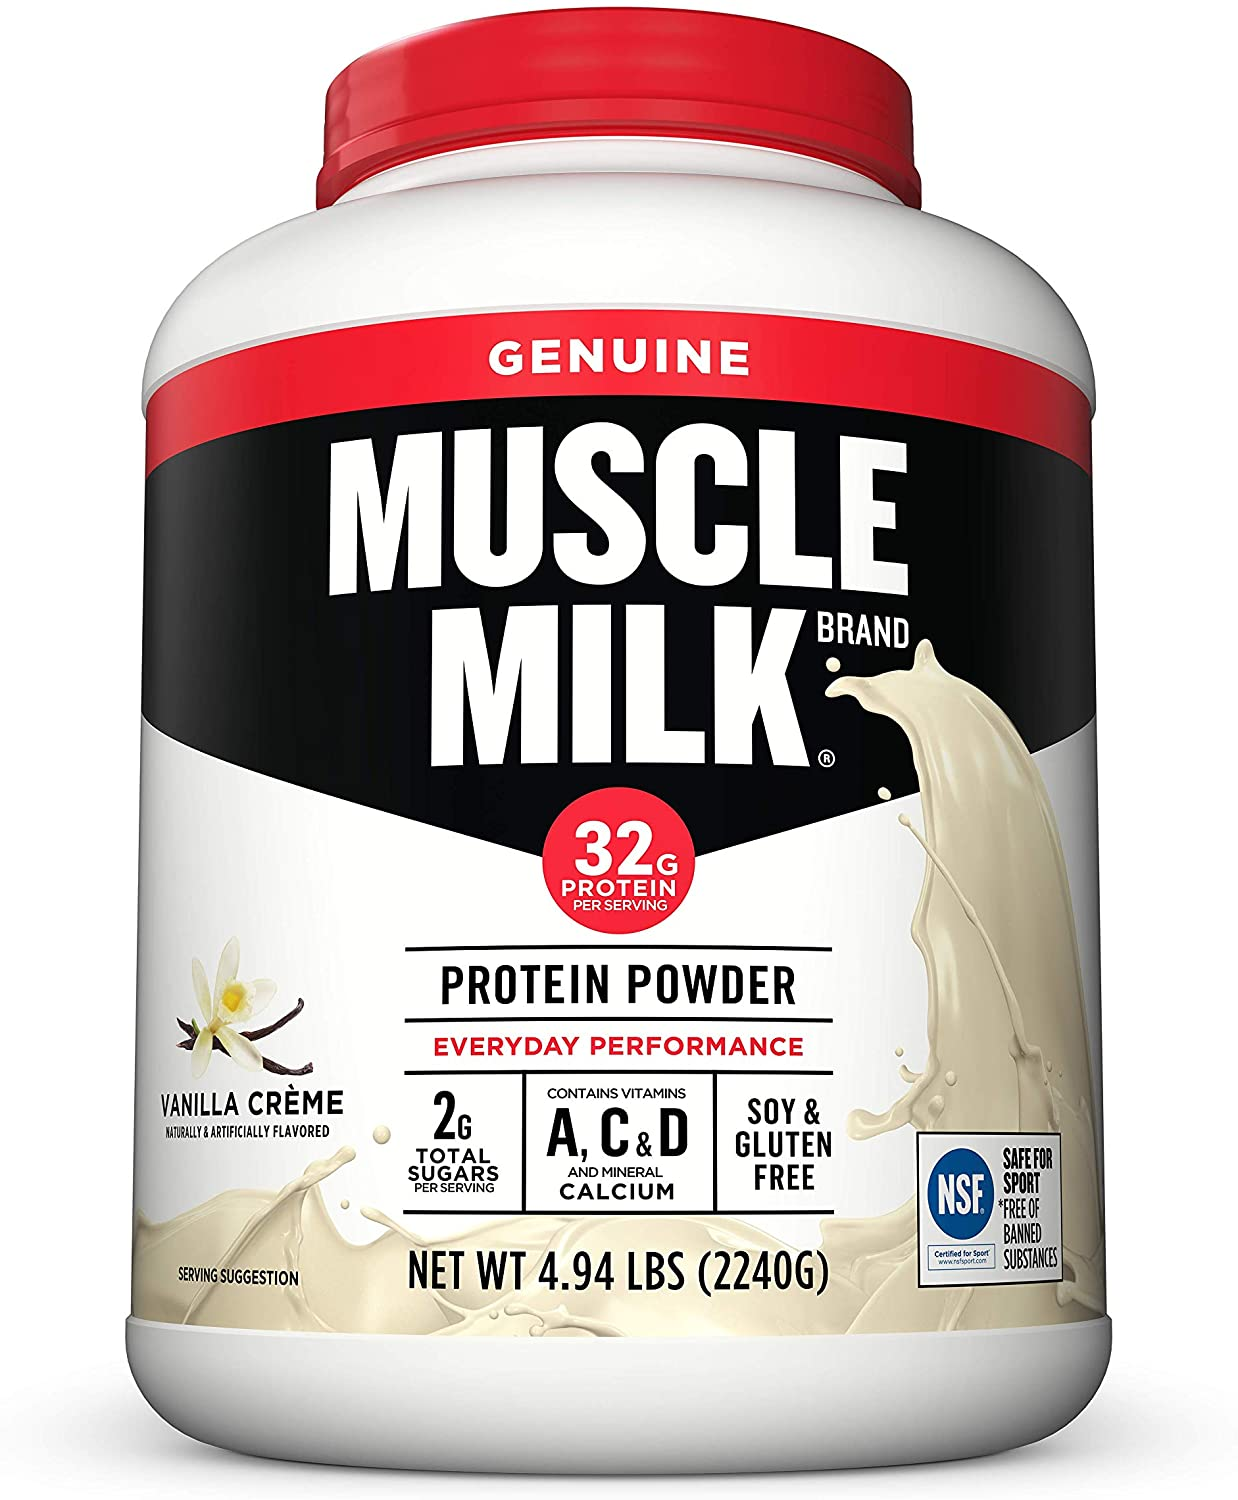 Muscle Milk Genuine Protein Powder, Vanilla Crème